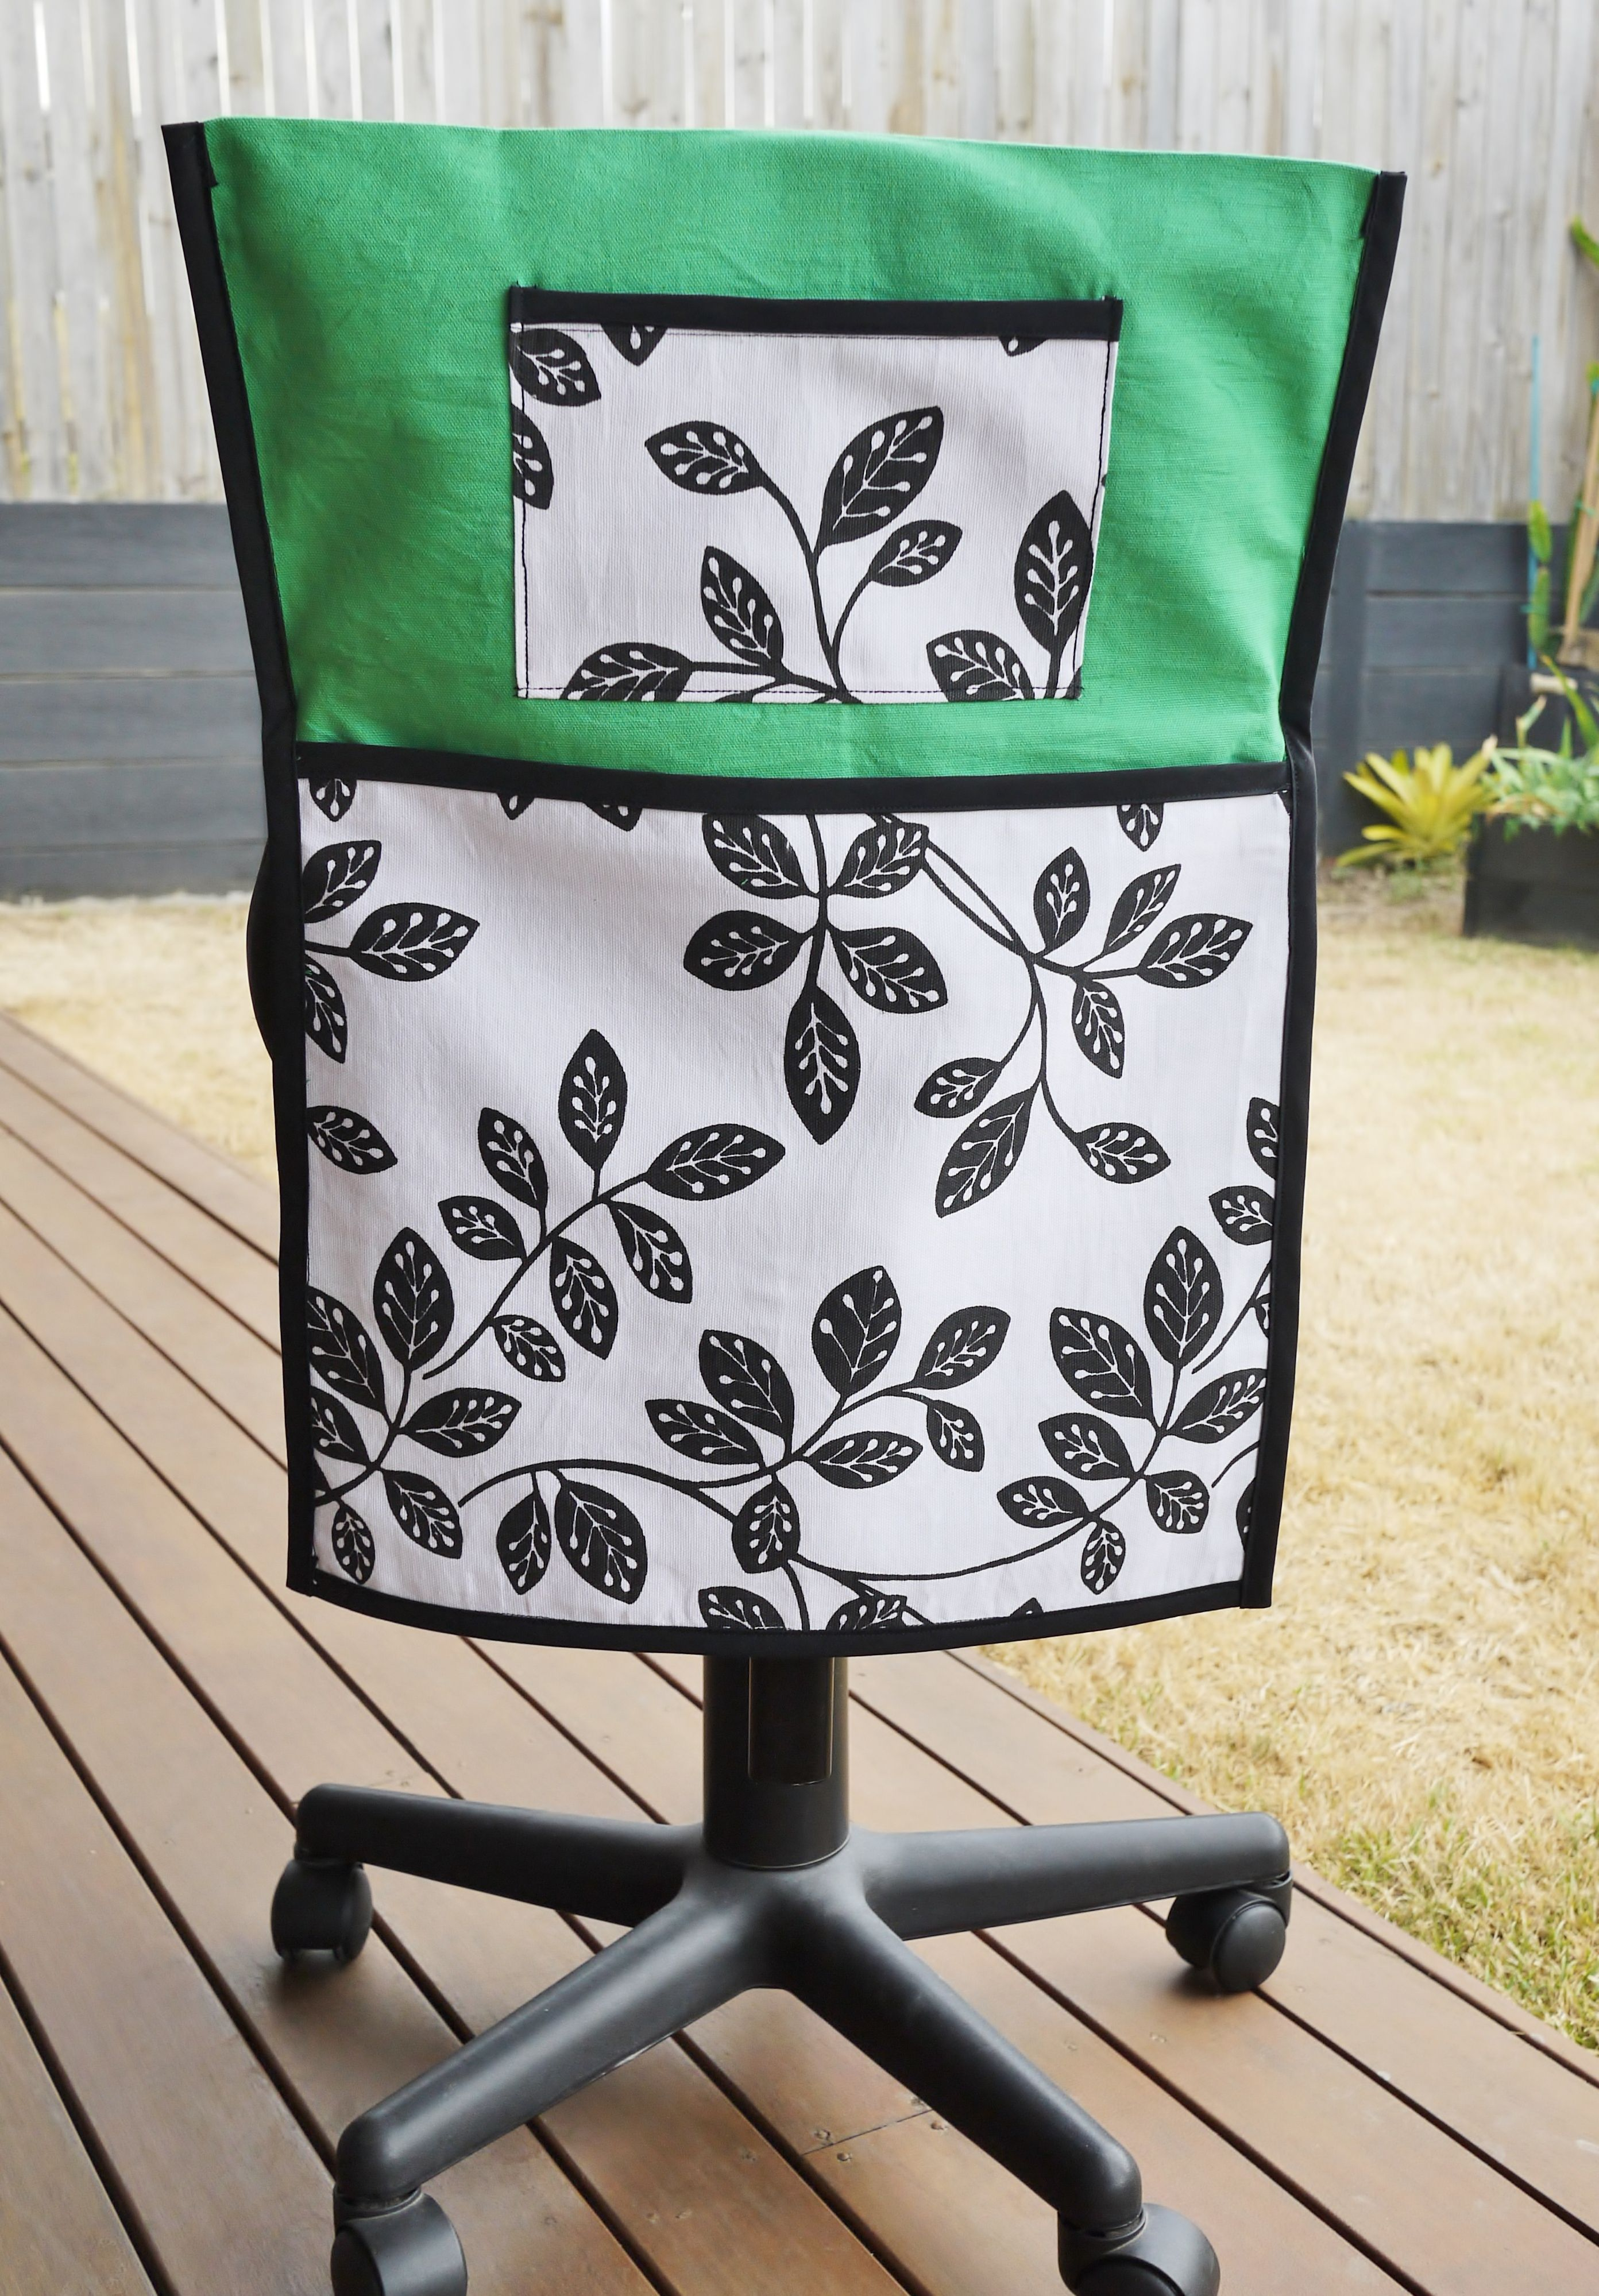 Delightful design - it outlasted the other chair bags in a ...